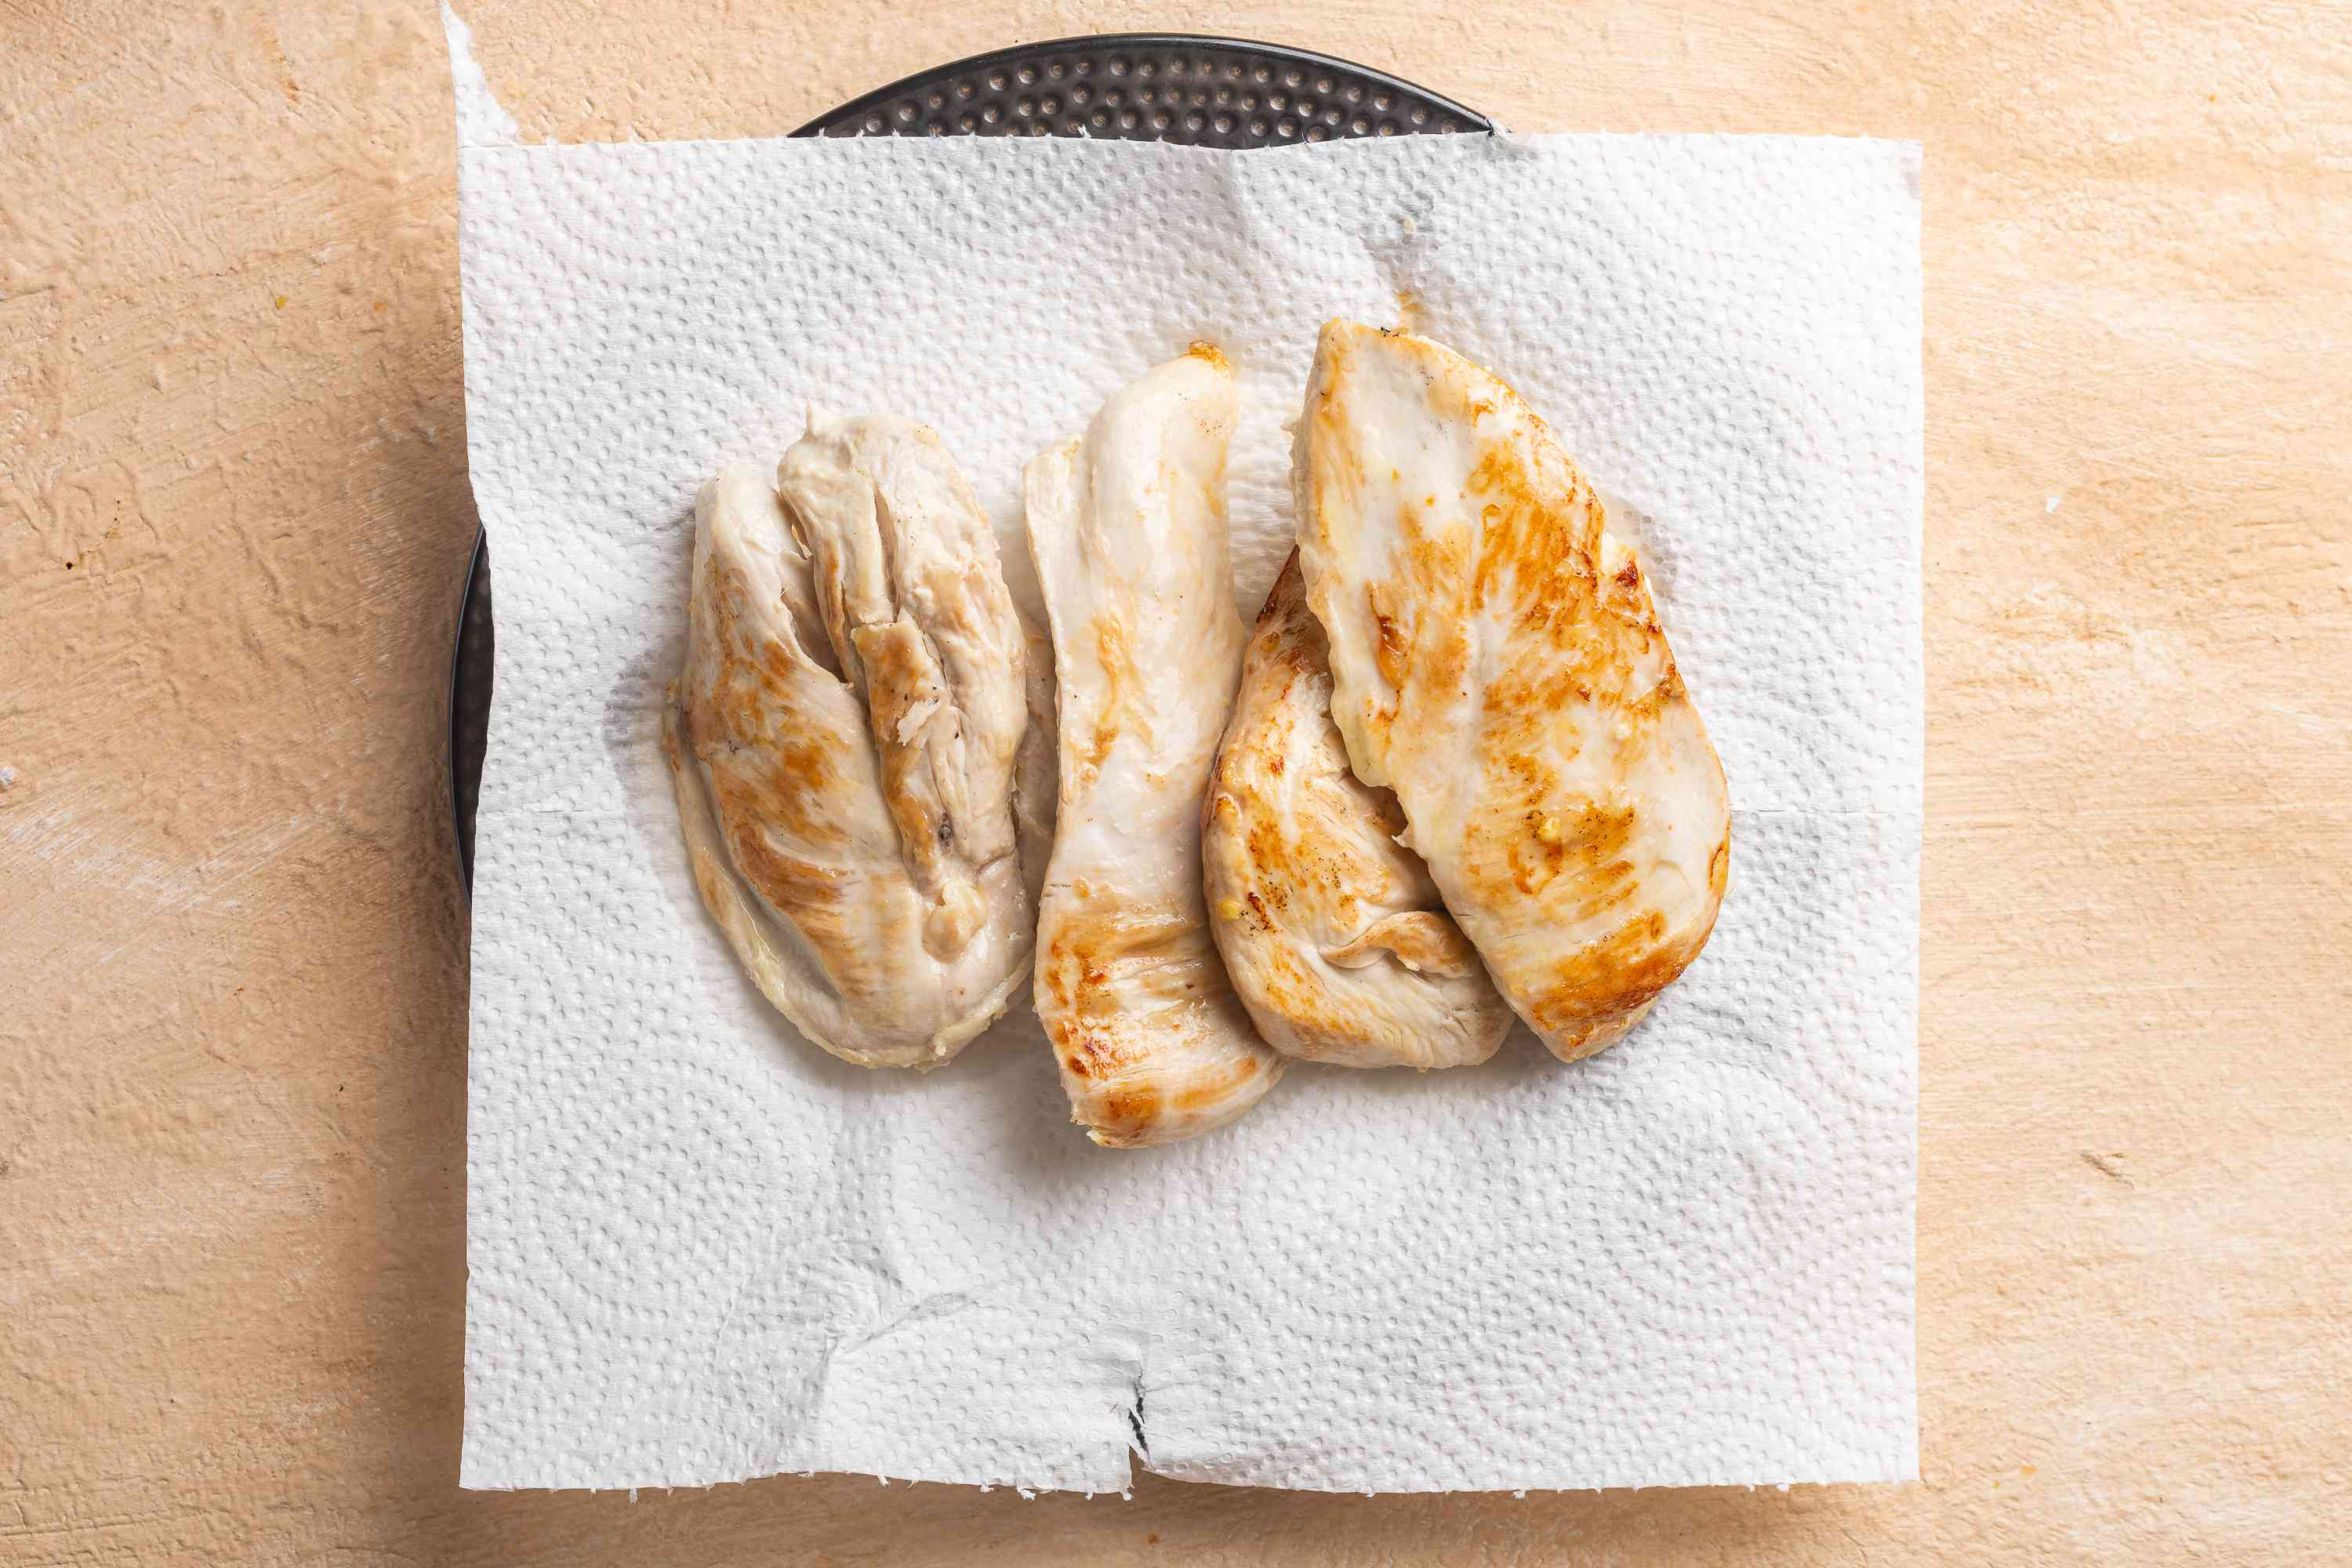 chicken on a paper towel lined plate